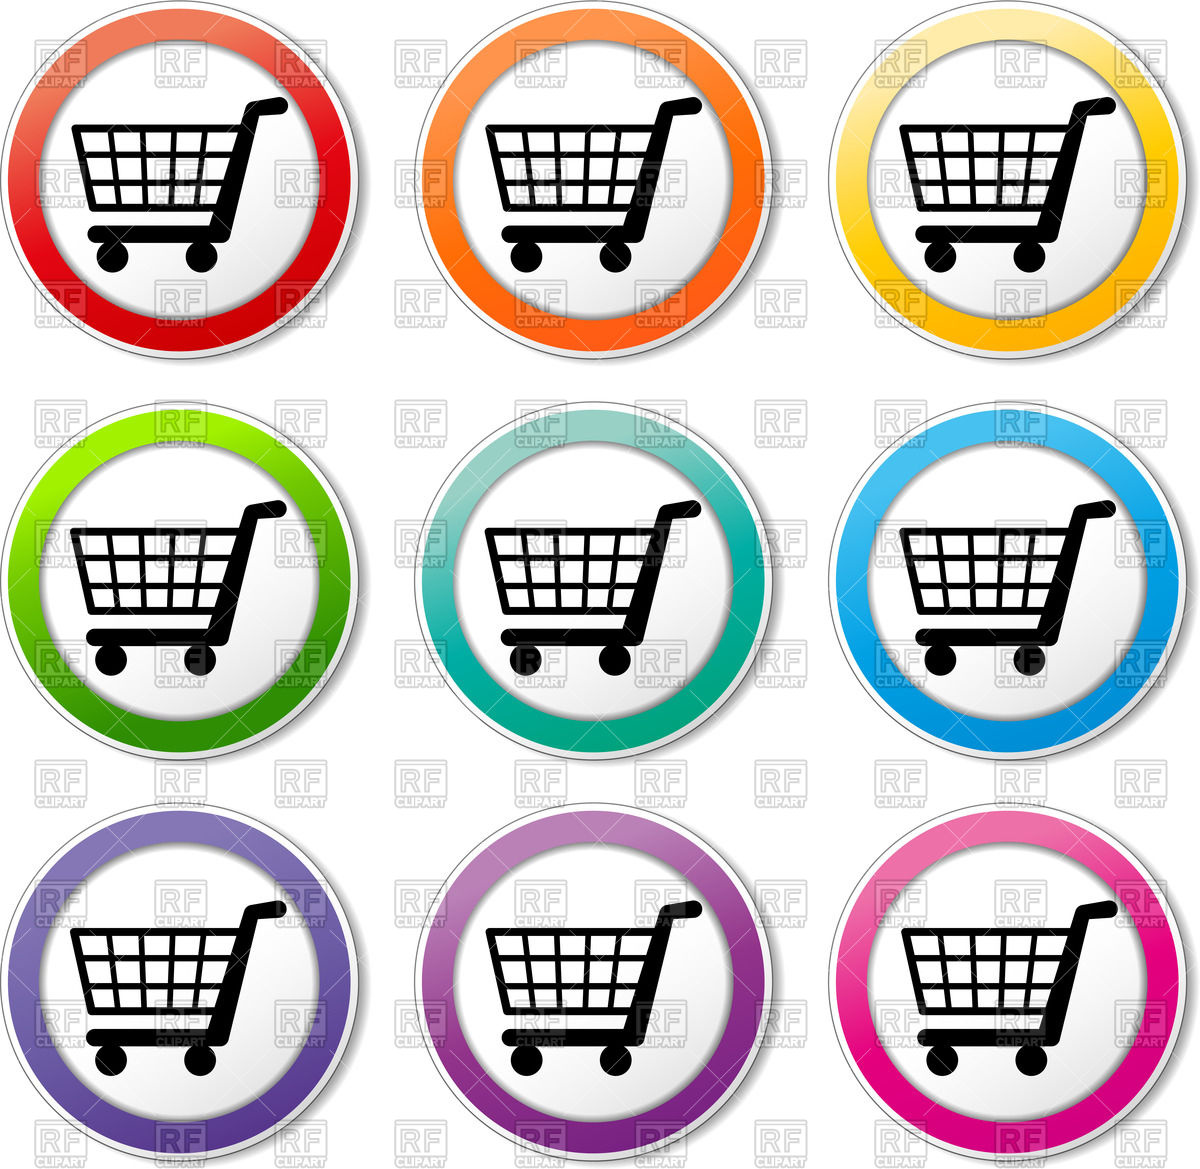 Trolley clipart shopping cart Cart Shopping Clipart Trolley Shopping